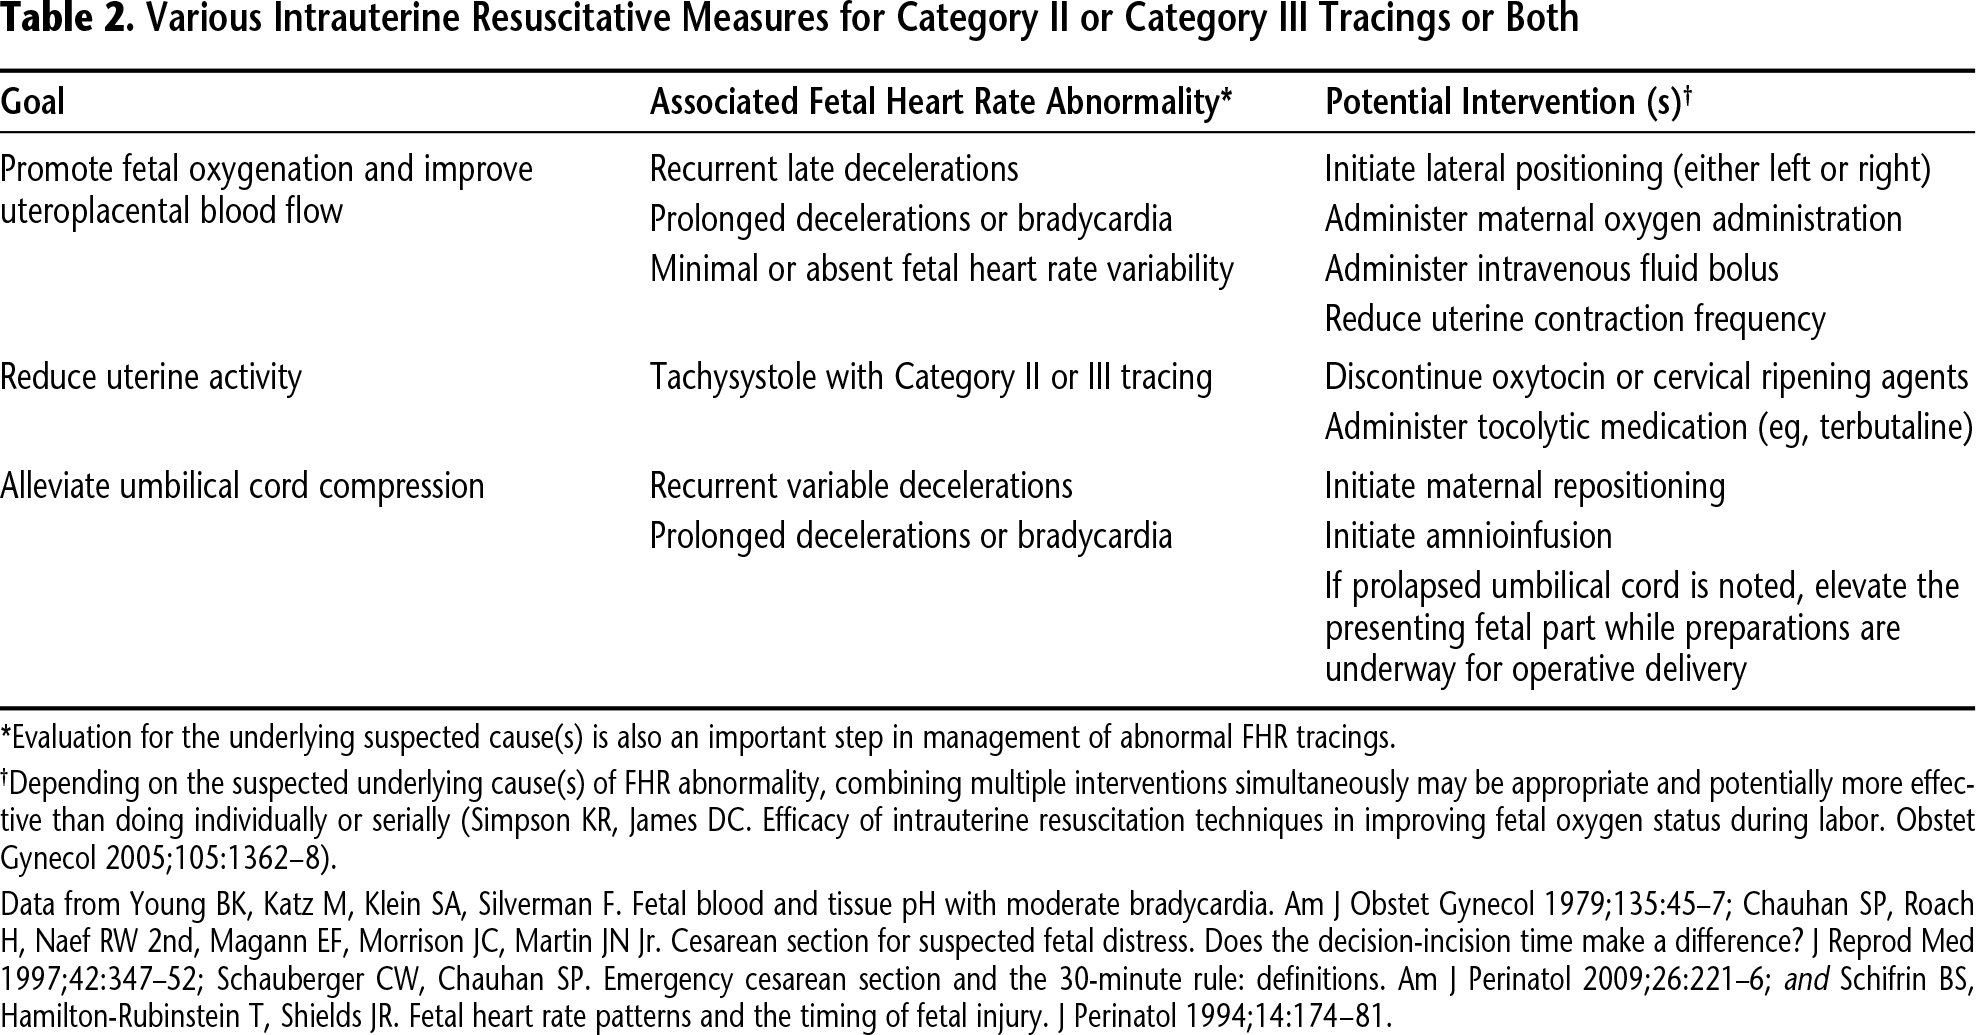 Table 2. Various Intrauterine Resuscitative Measures for Category II or Category III Tracings or Both